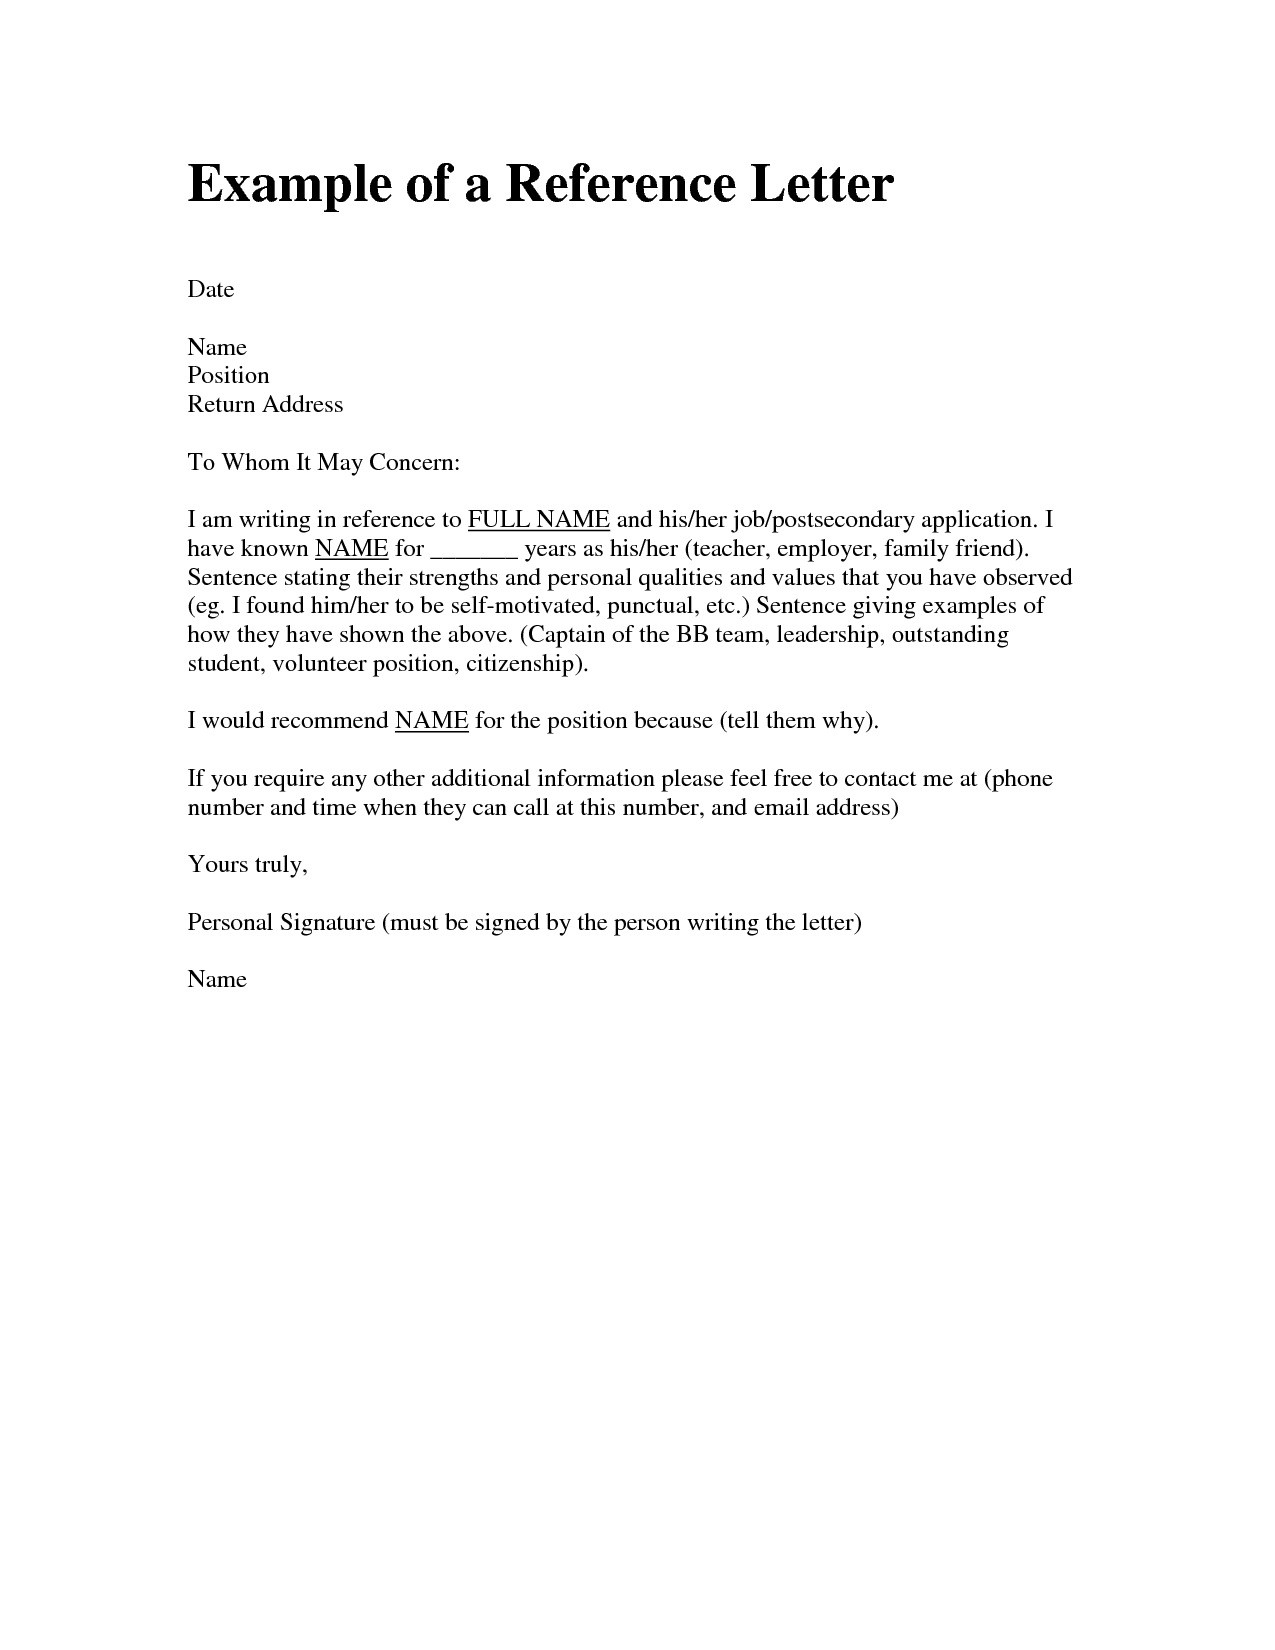 Personal Reference Letter for A Friend Template - Example Personal Re Mendation Letter for Job Best Re Mendation